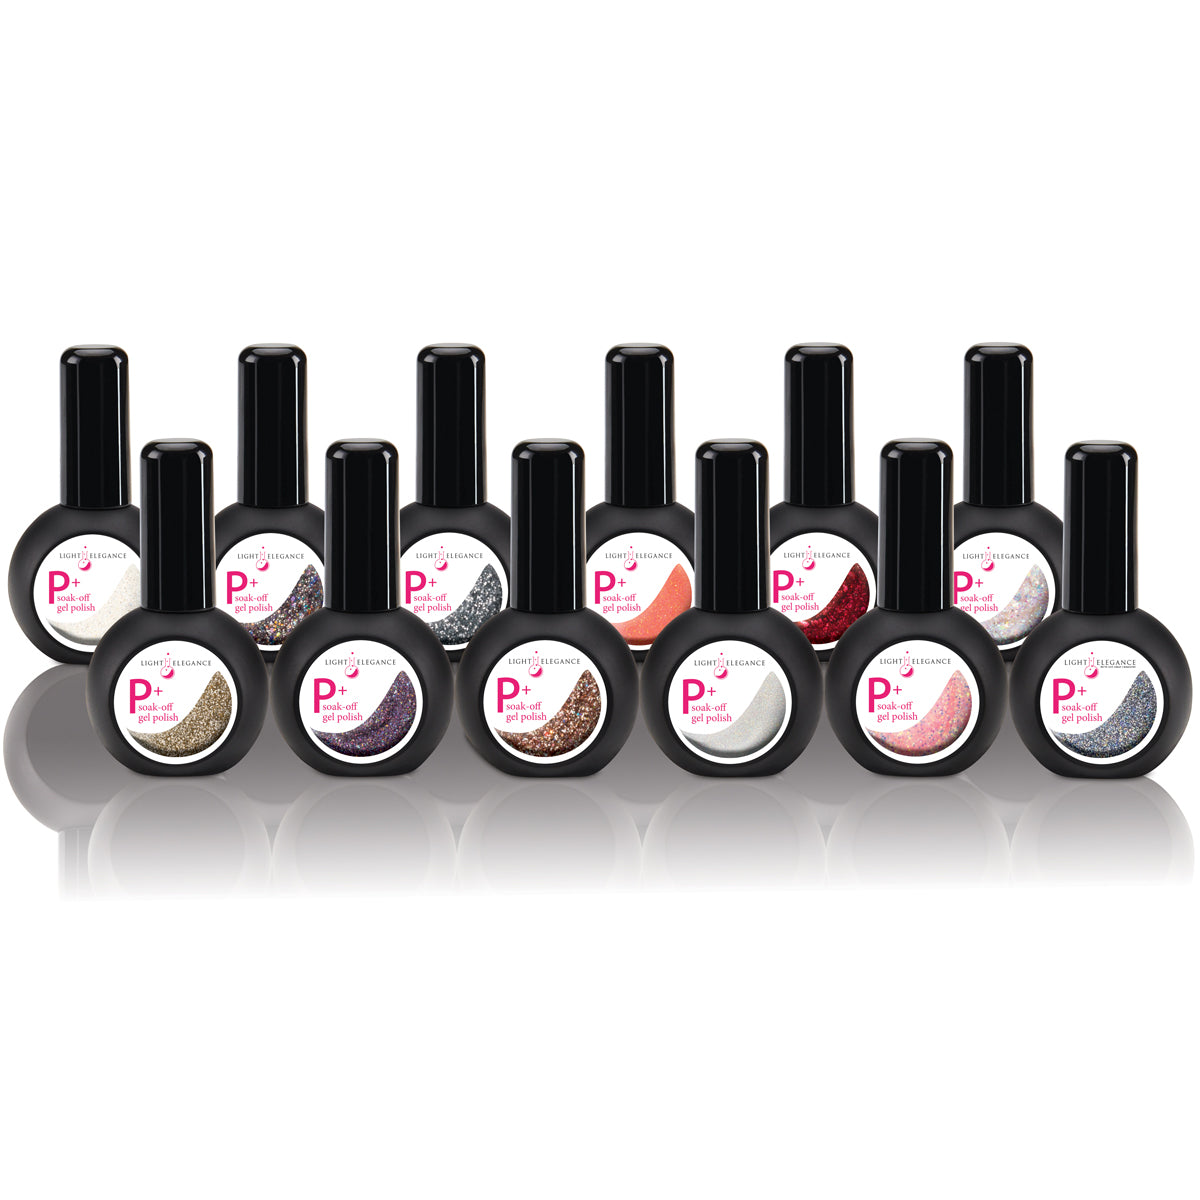 P+ Classic Glitter Gels Collection - Get All 12 New Shades Here